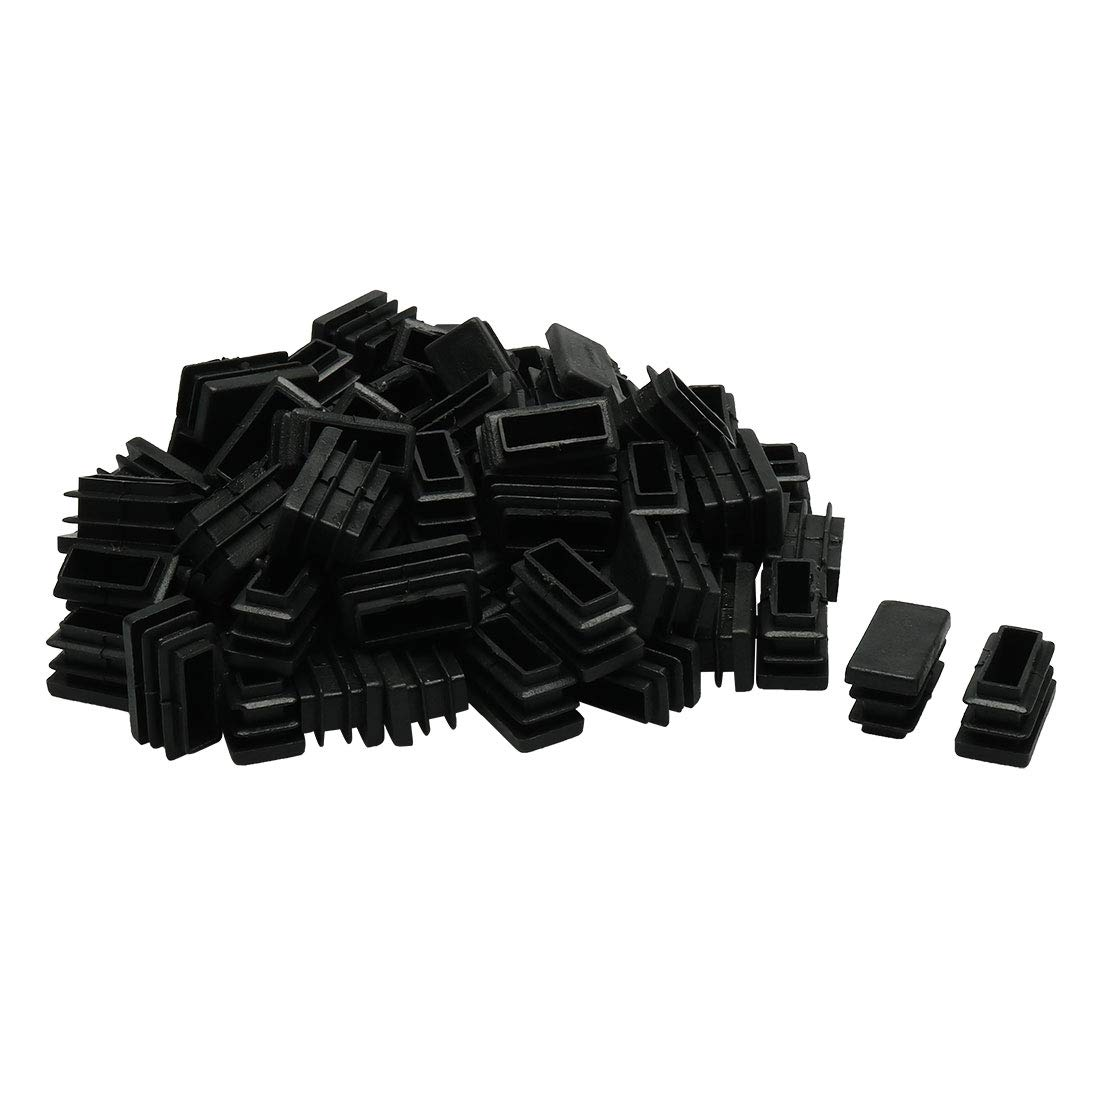 uxcell 100pcs 25 x 50mm Plastic Rectangle Ribbed Tube Inserts End Cover Cap Furniture Glide Chair Desk Feet Floor Protector